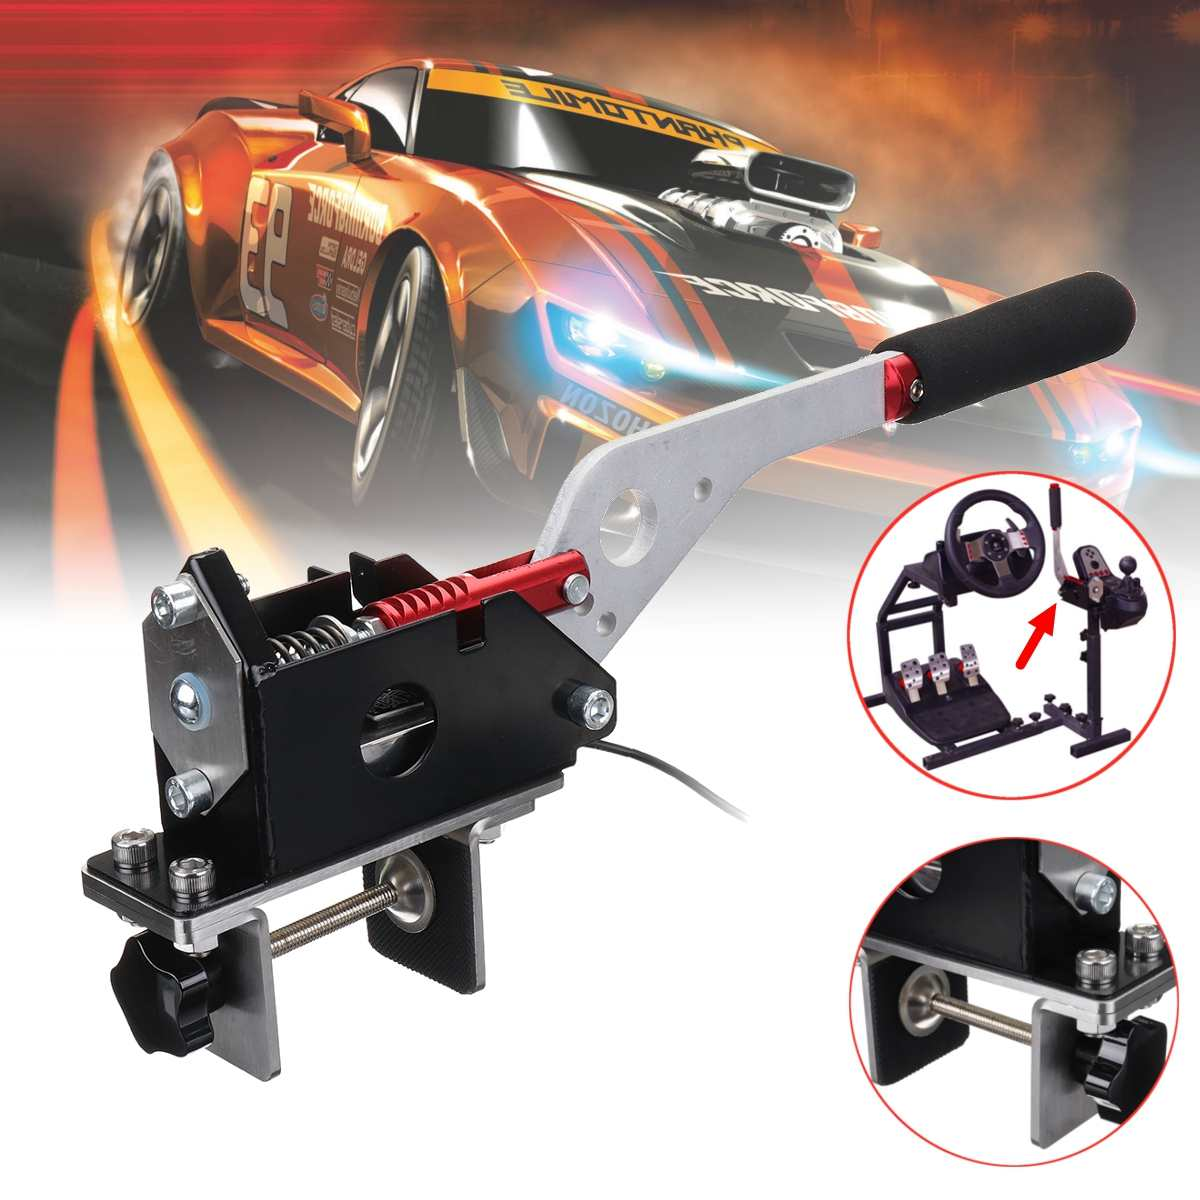 USB Handbrake SIM PC Windows Clamp for Racing Games G25/27/29 T500 FANATECOSW DIRT RALLY without Fixture image